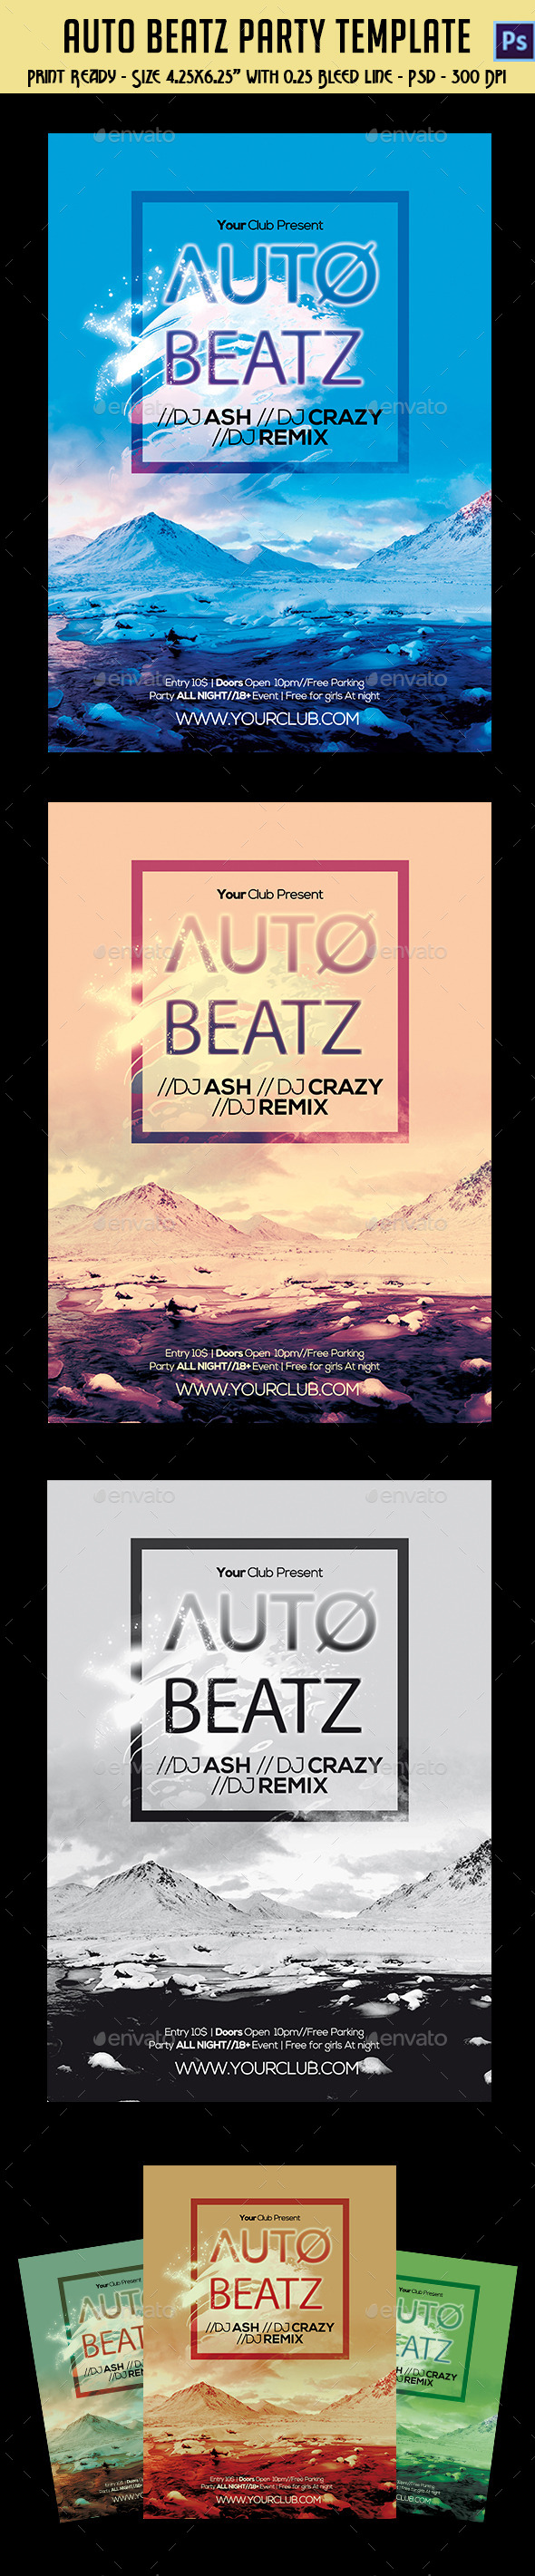 Auto Beatz Party Template - Clubs & Parties Events